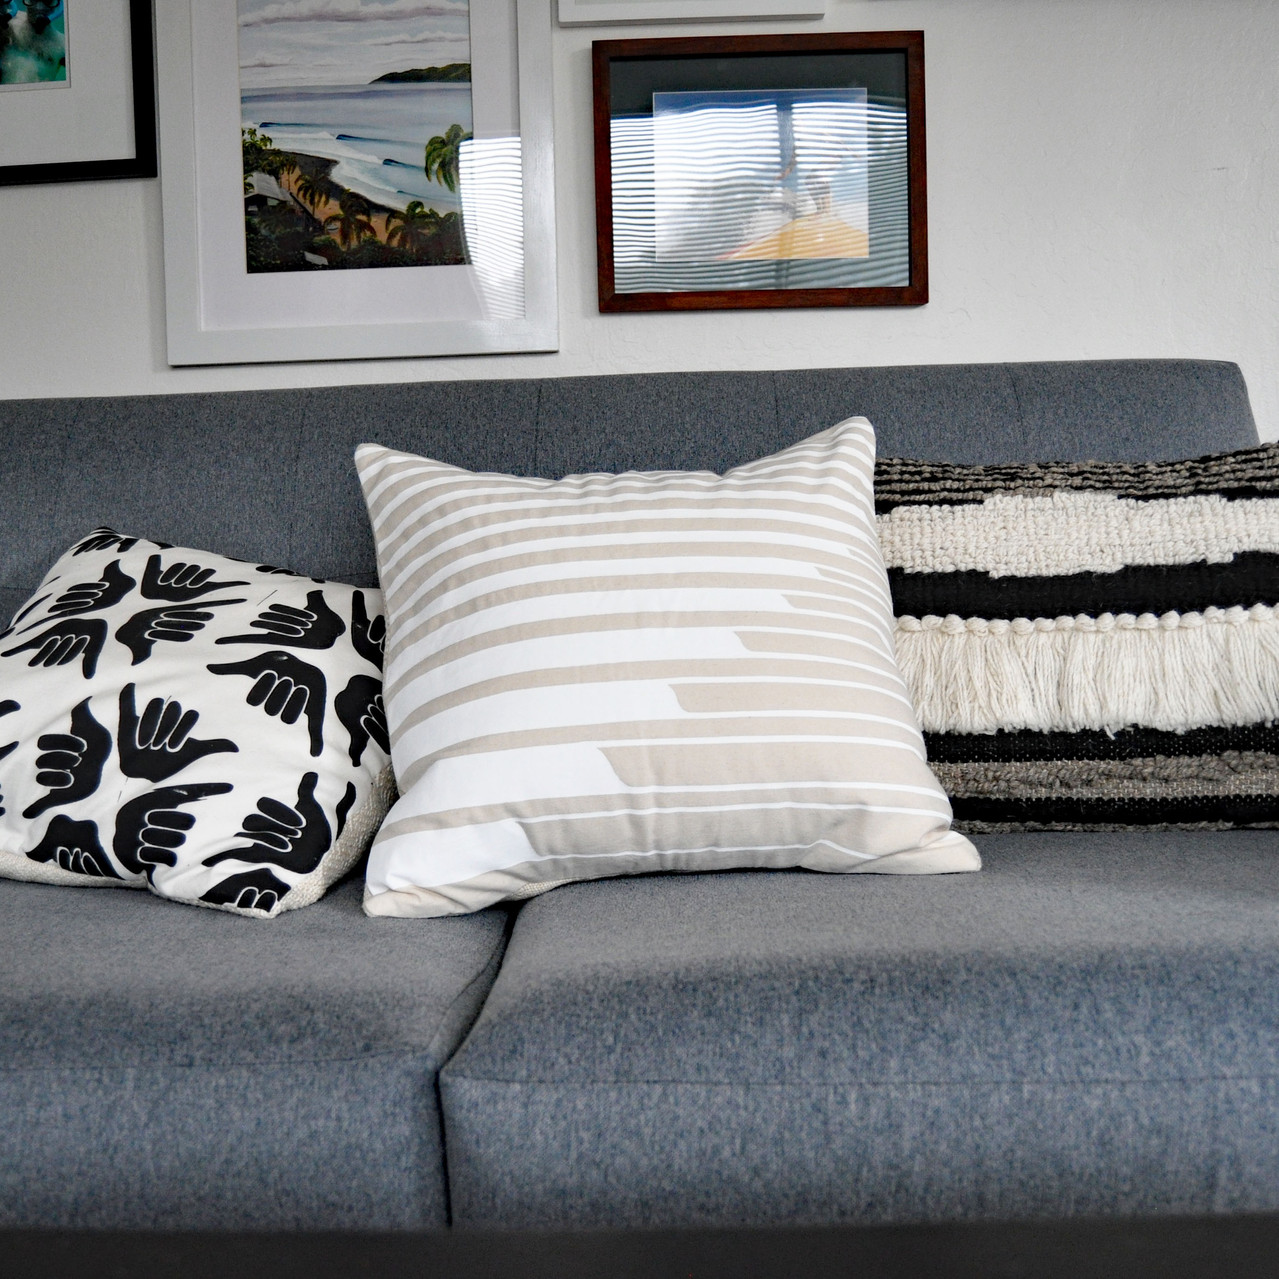 pillow-swell-white7